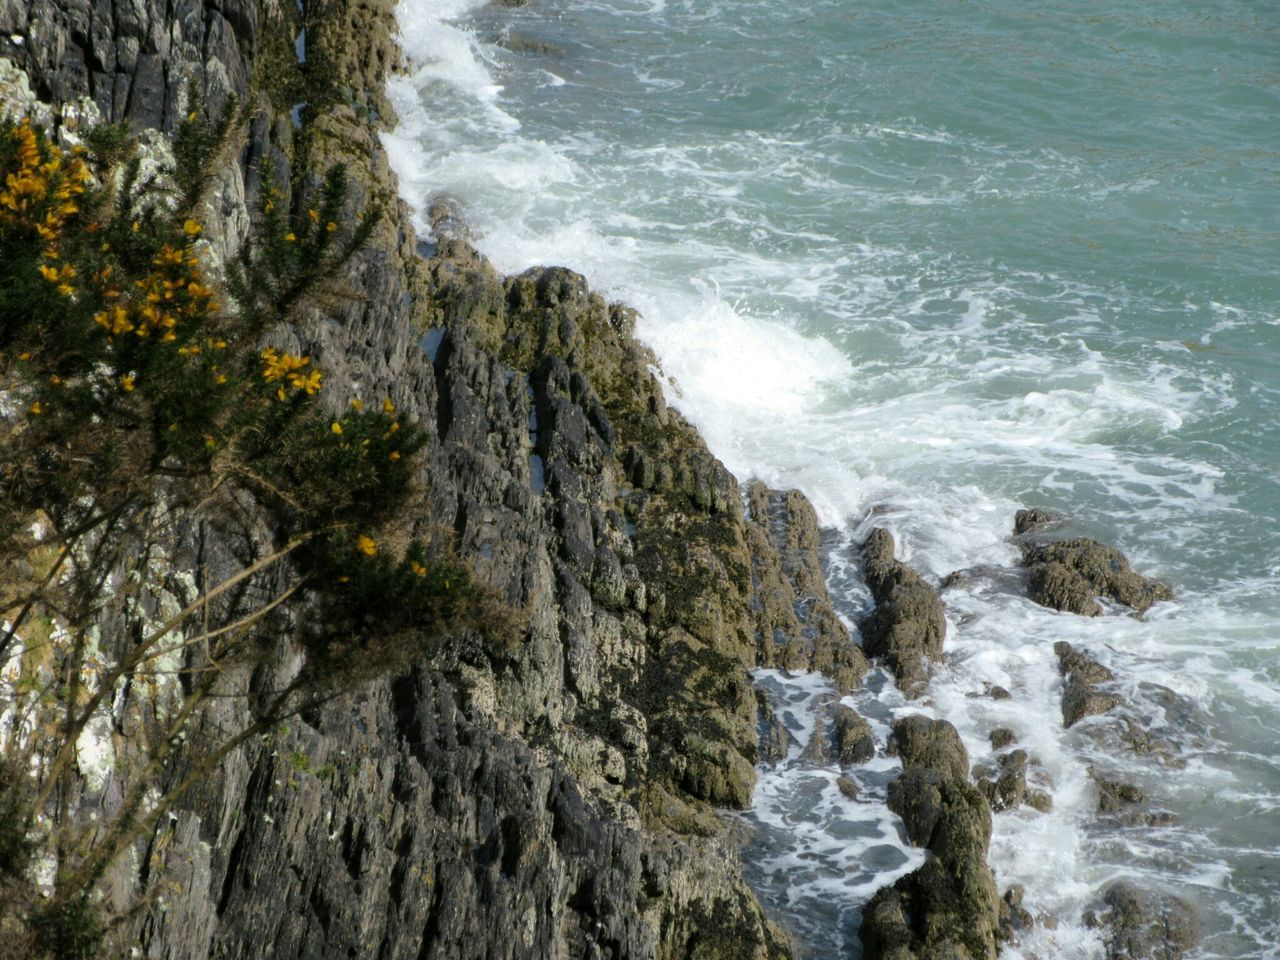 From the clifftop Cliff Cliffs Clifftop Cliff Face Waves Crashing On Rocks Rough Sea Gorse Bush Glandore, Ireland West Cork Wildatlanticway Ireland